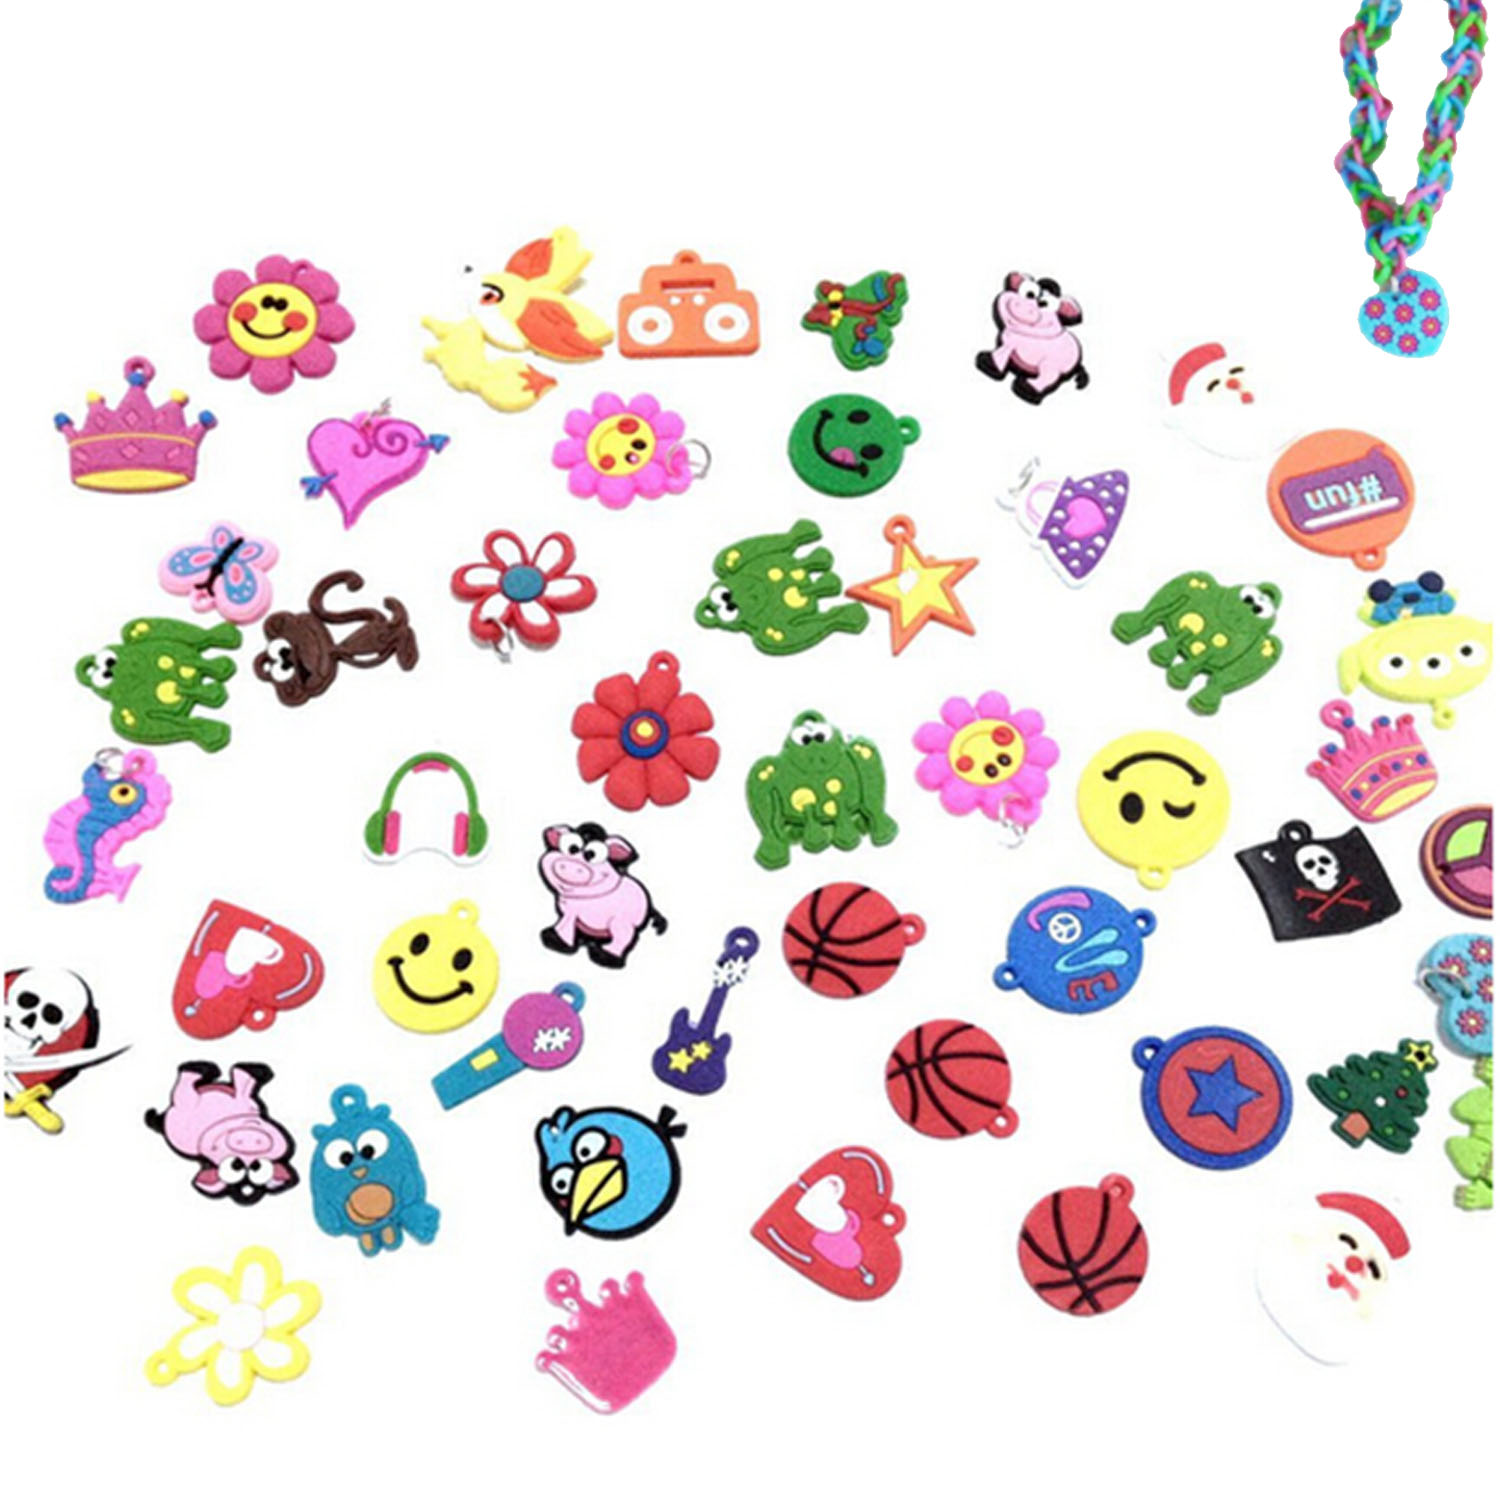 30Pcs Kawaii Funny Mini Cut Charms Pendants Toys Gifts Fashion DIY Colorful Loom Rubber Bands Bracelets Making Kit Random Style